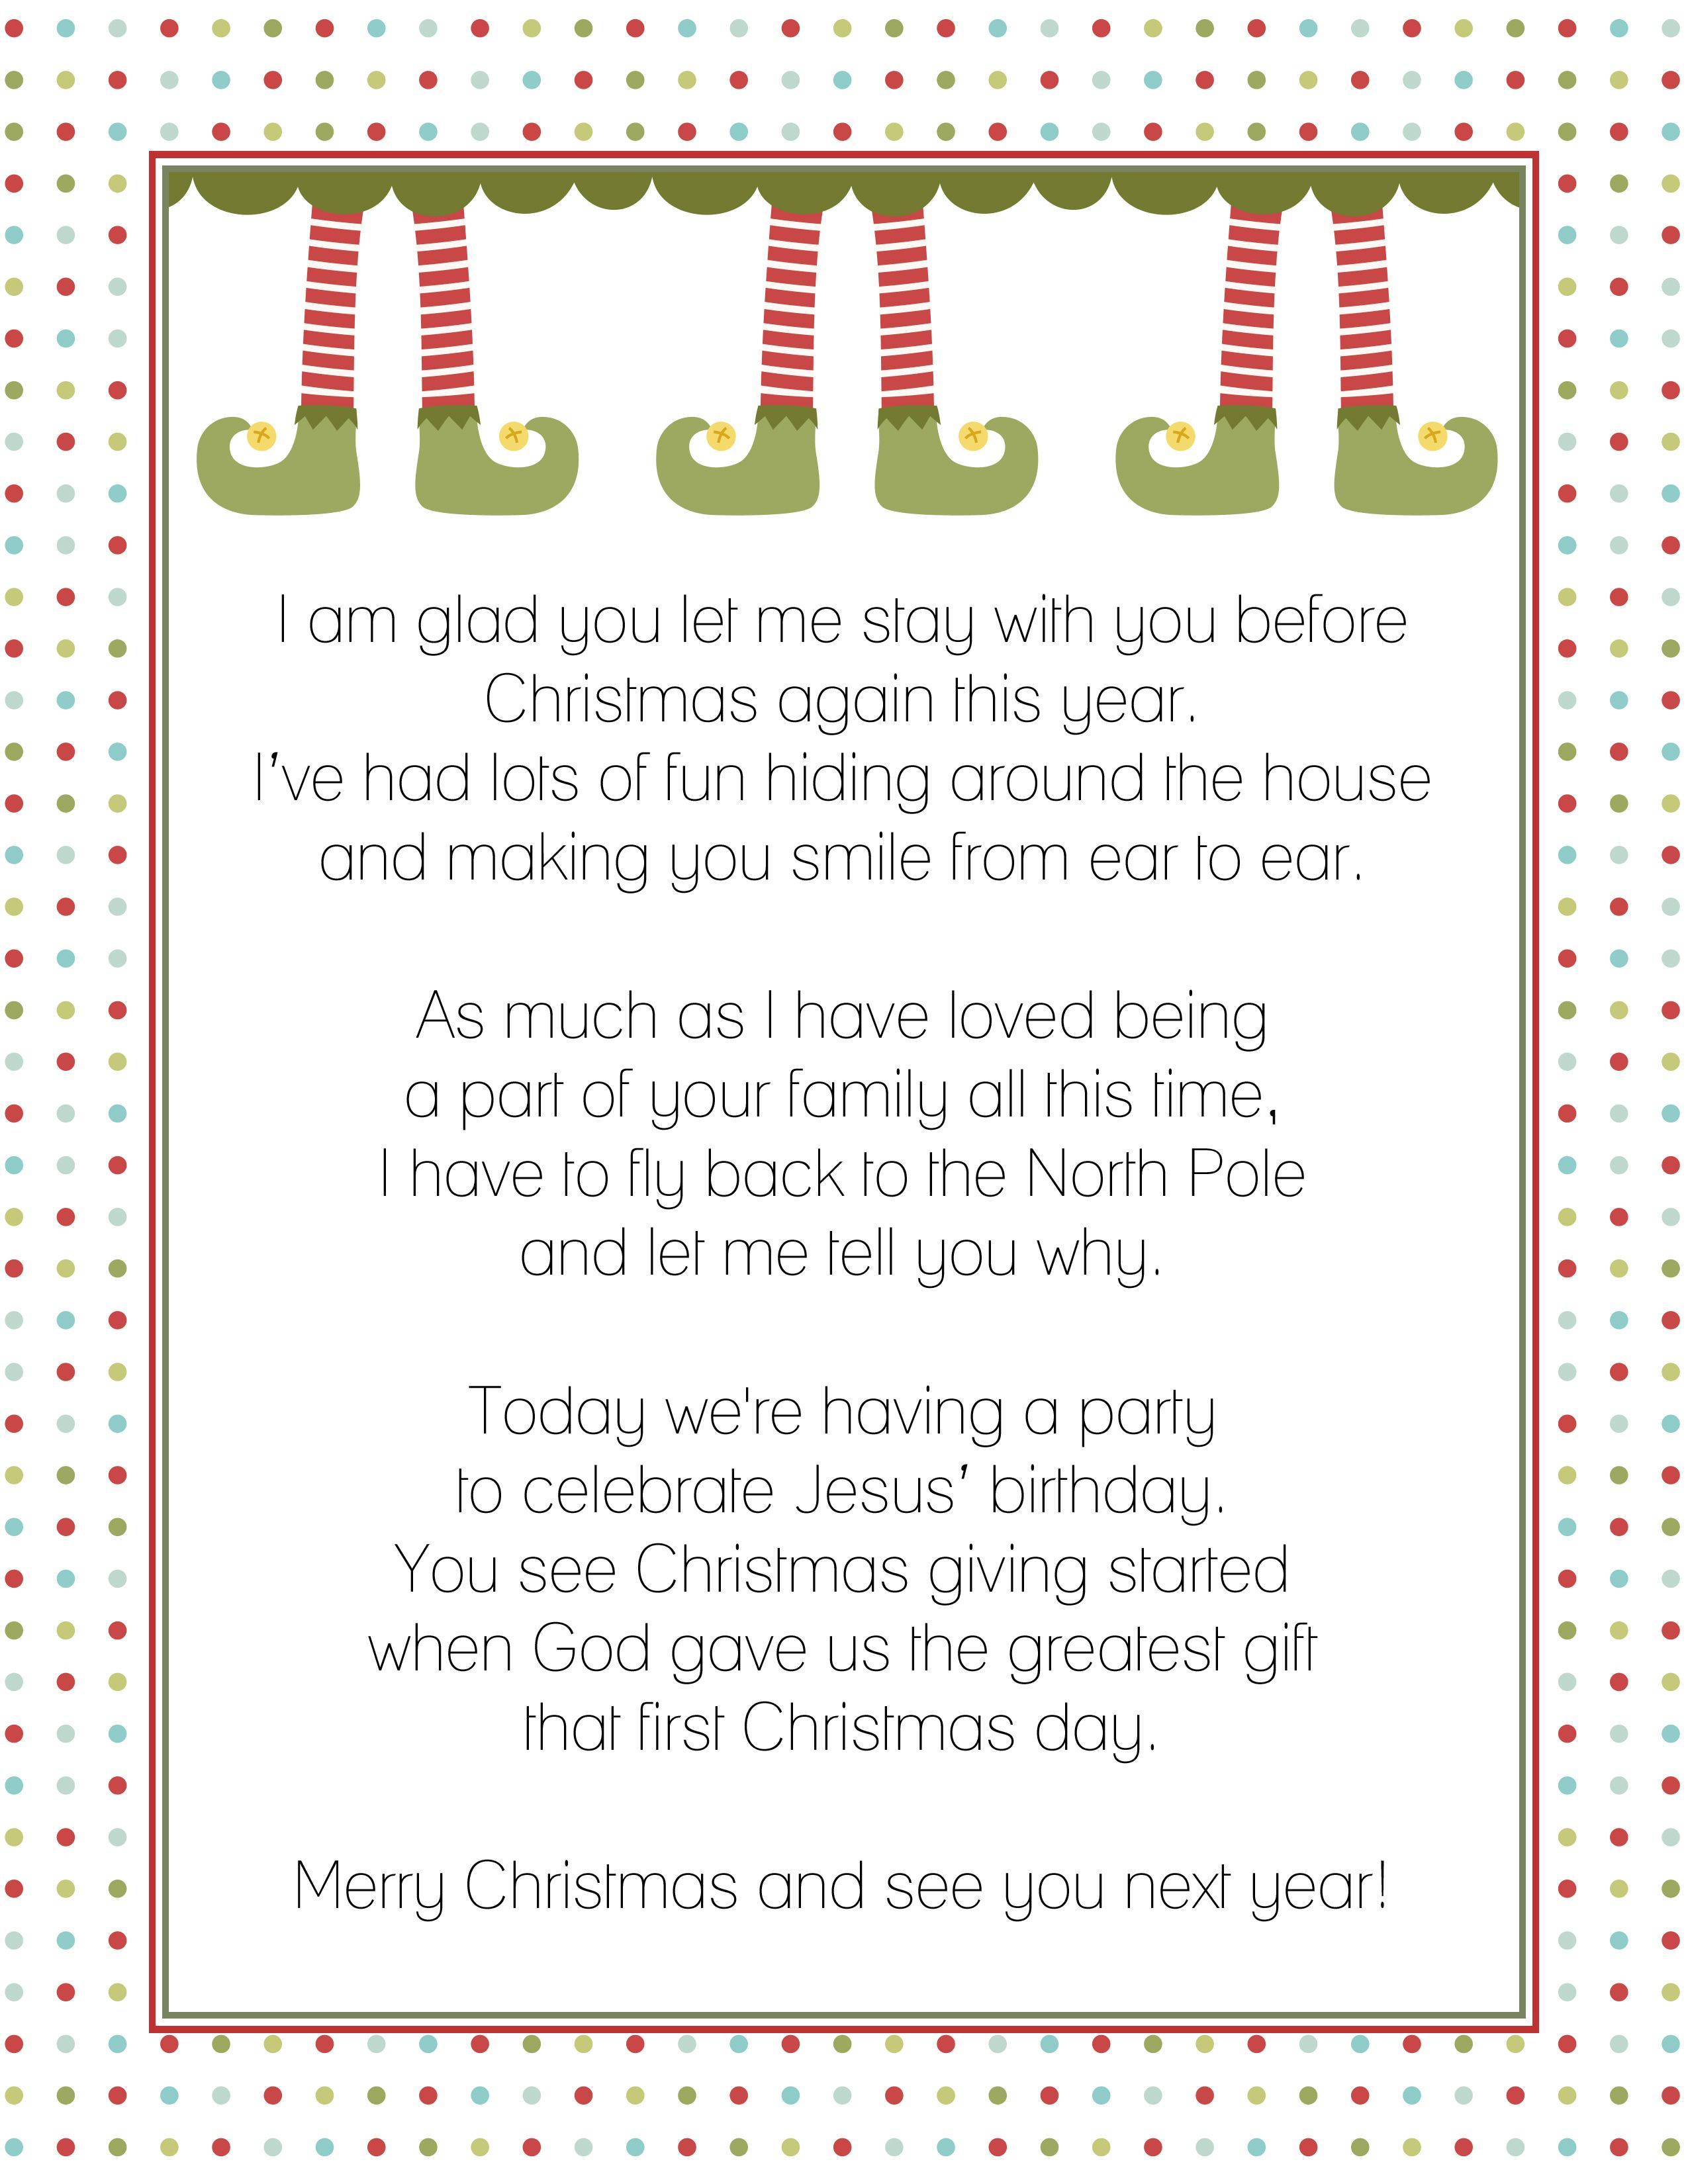 Goodbye Letter From The Elf On A Shelf | Christmas! | Pinterest - Elf On The Shelf Goodbye Letter Free Printable